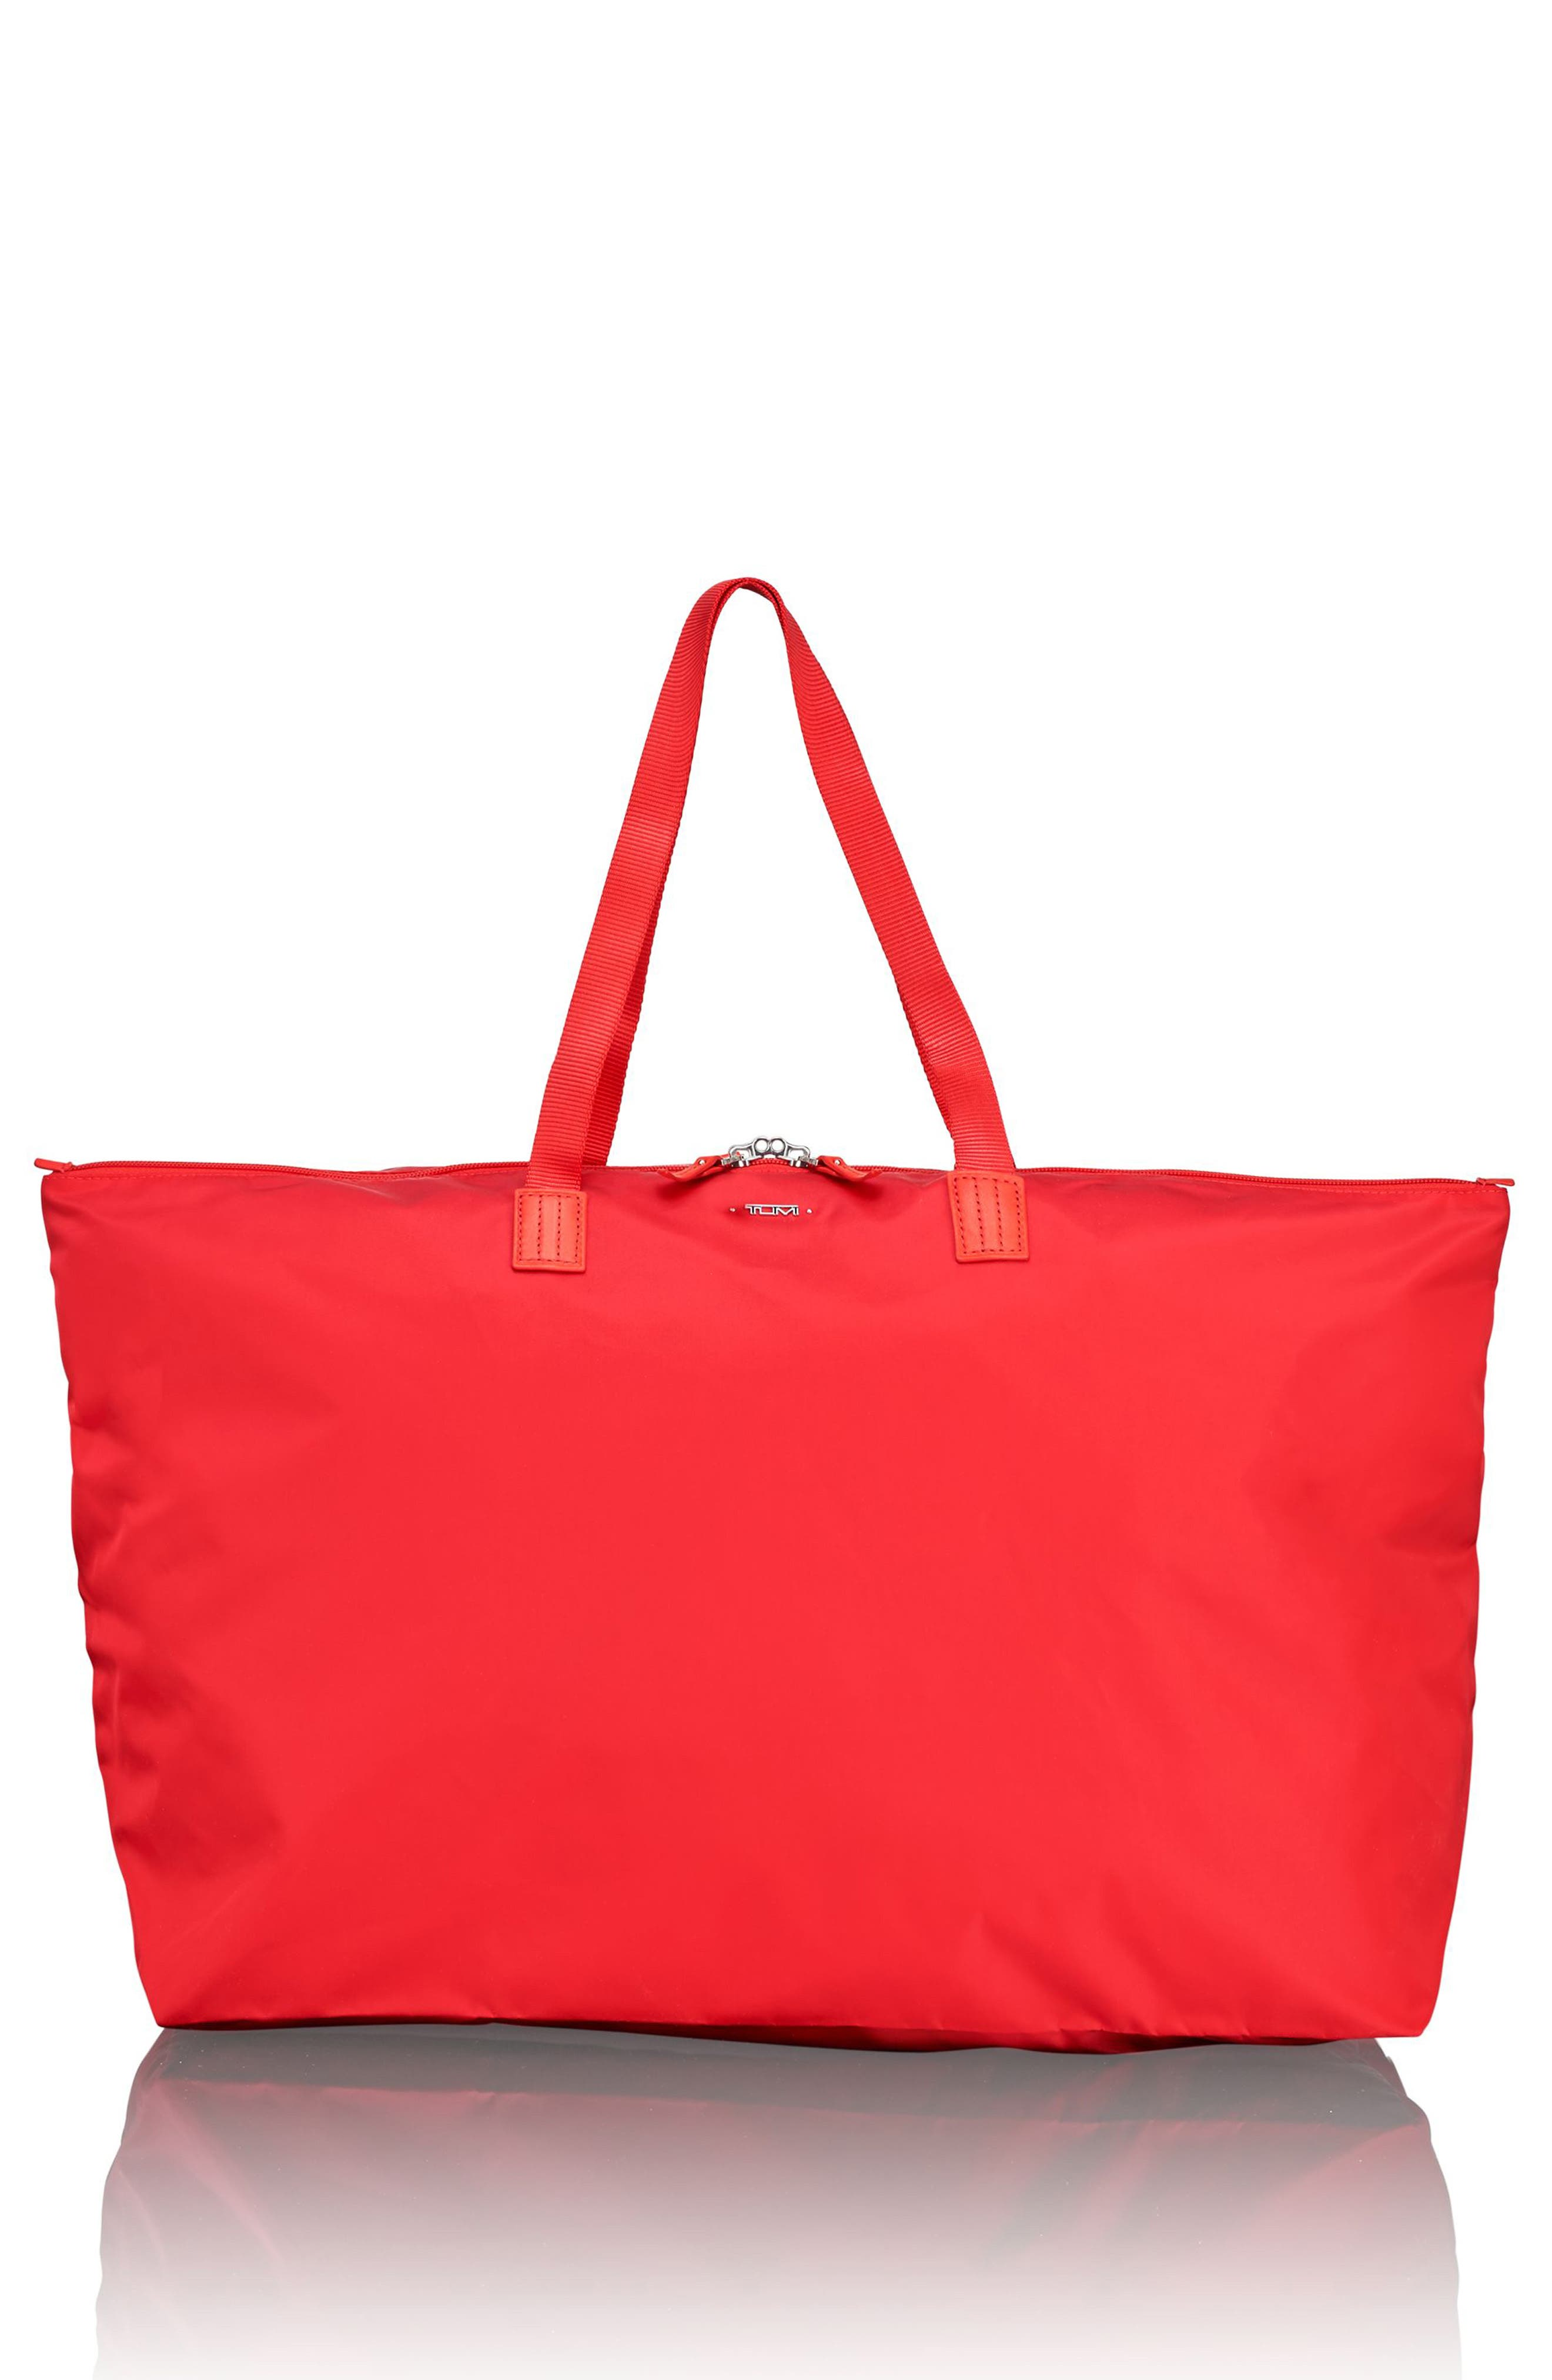 Main Image - Tumi 'Just in Case' Nylon Travel Tote